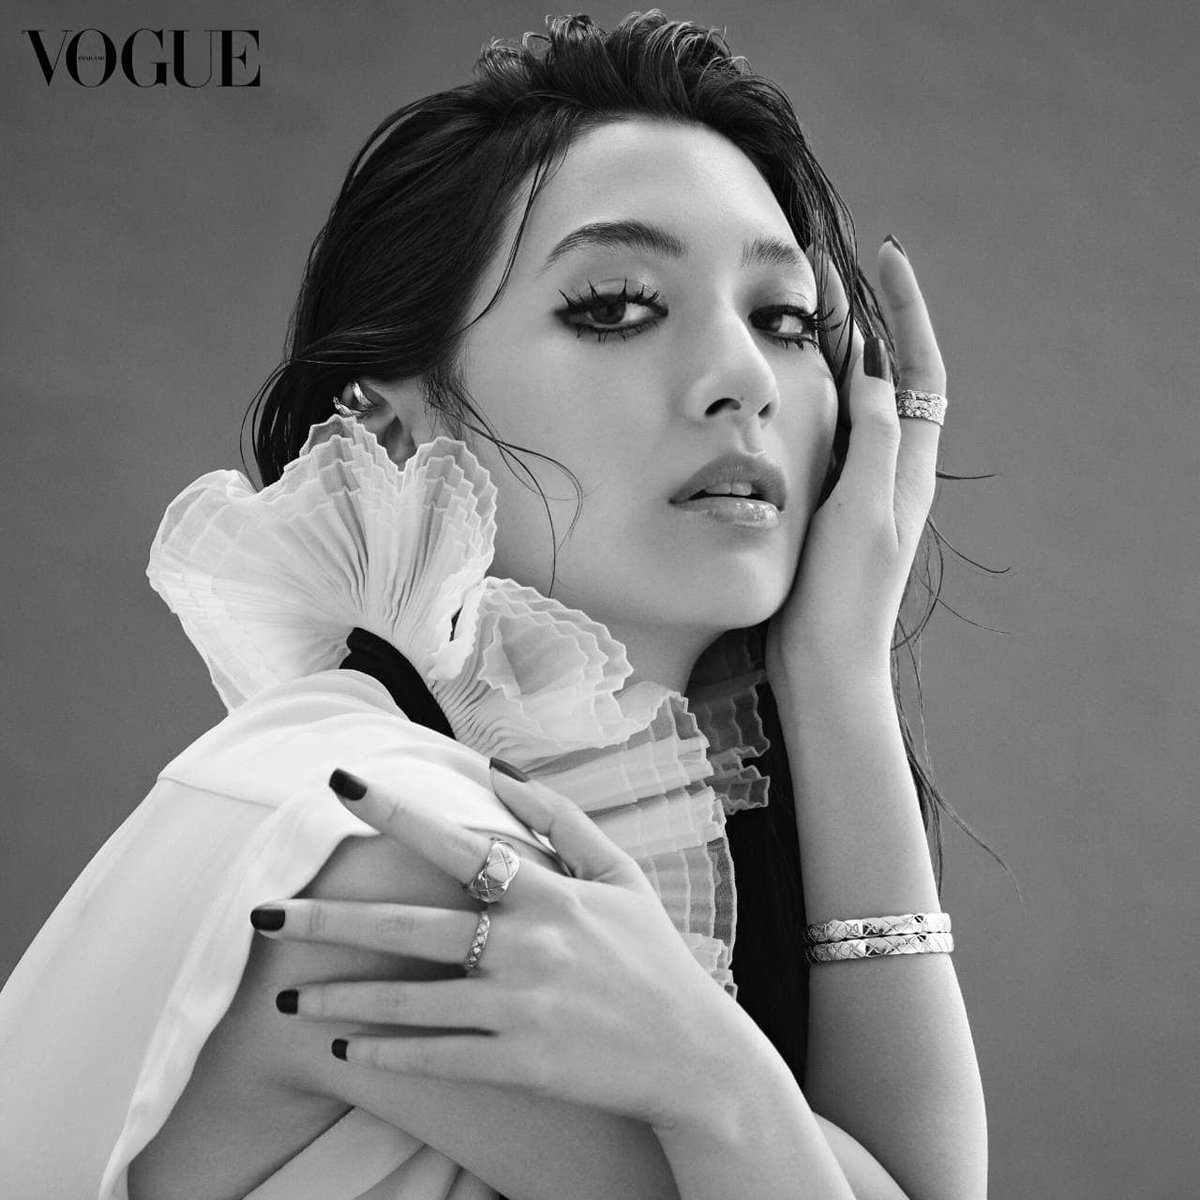 ^_^  The most beautiful 😍💚 ^_^ เซต ๑ ... ~  #COCOCRUSH #CHANELFineJewelry @chanelofficial @voguethailand  ~ ... Cr: Repost @pujira ...... ..... #mewnittha  #mewnitthafanclub_official  #มิวนิษฐา  #pujira  #teammew https://t.co/nOMRLWLXlD